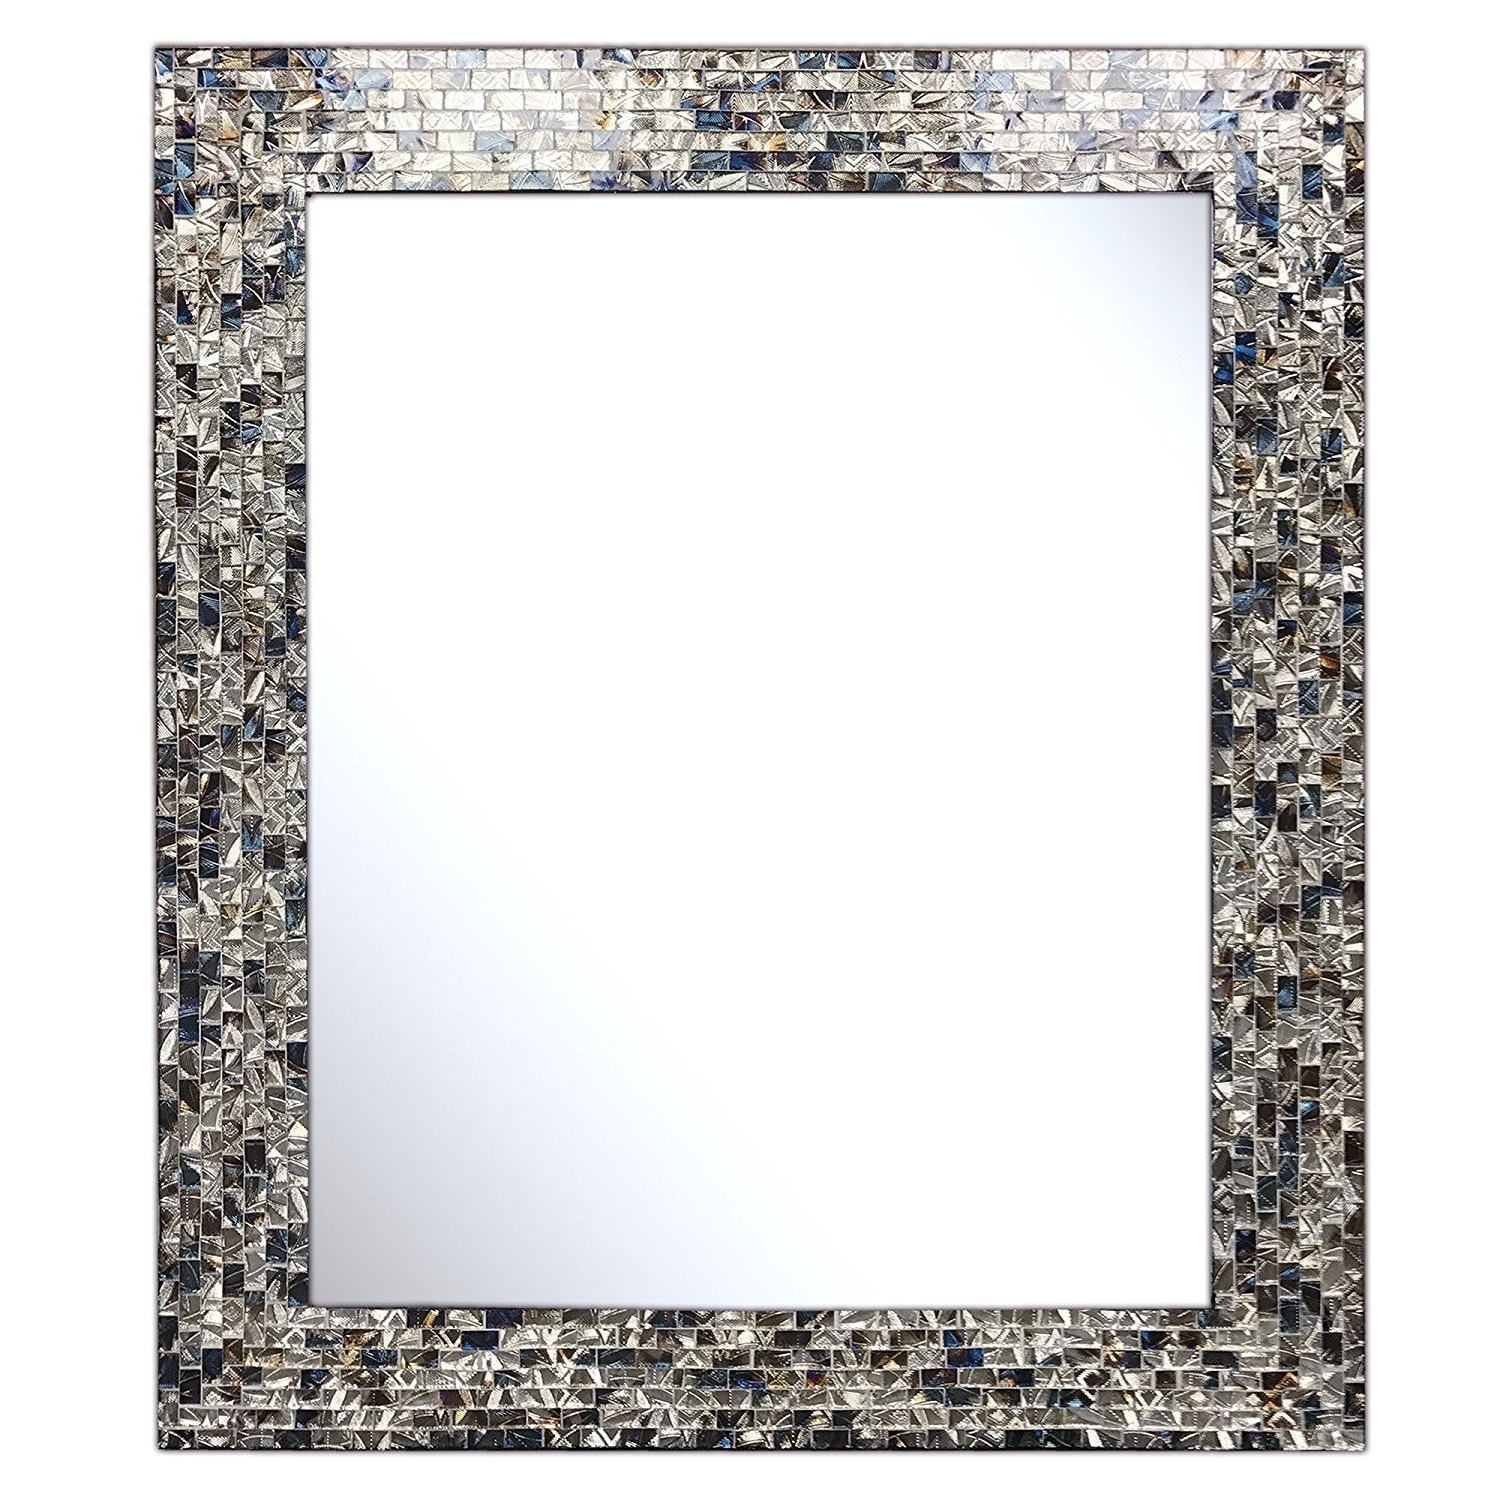 "Multi Colored & Silver, Luxe Mosaic Glass Framed Wall Mirror, Decorative  Embossed Rectangular Vanity / Accent Mirror (30"" X 24"") Regarding Fashionable Silver Framed Wall Mirrors (View 10 of 20)"